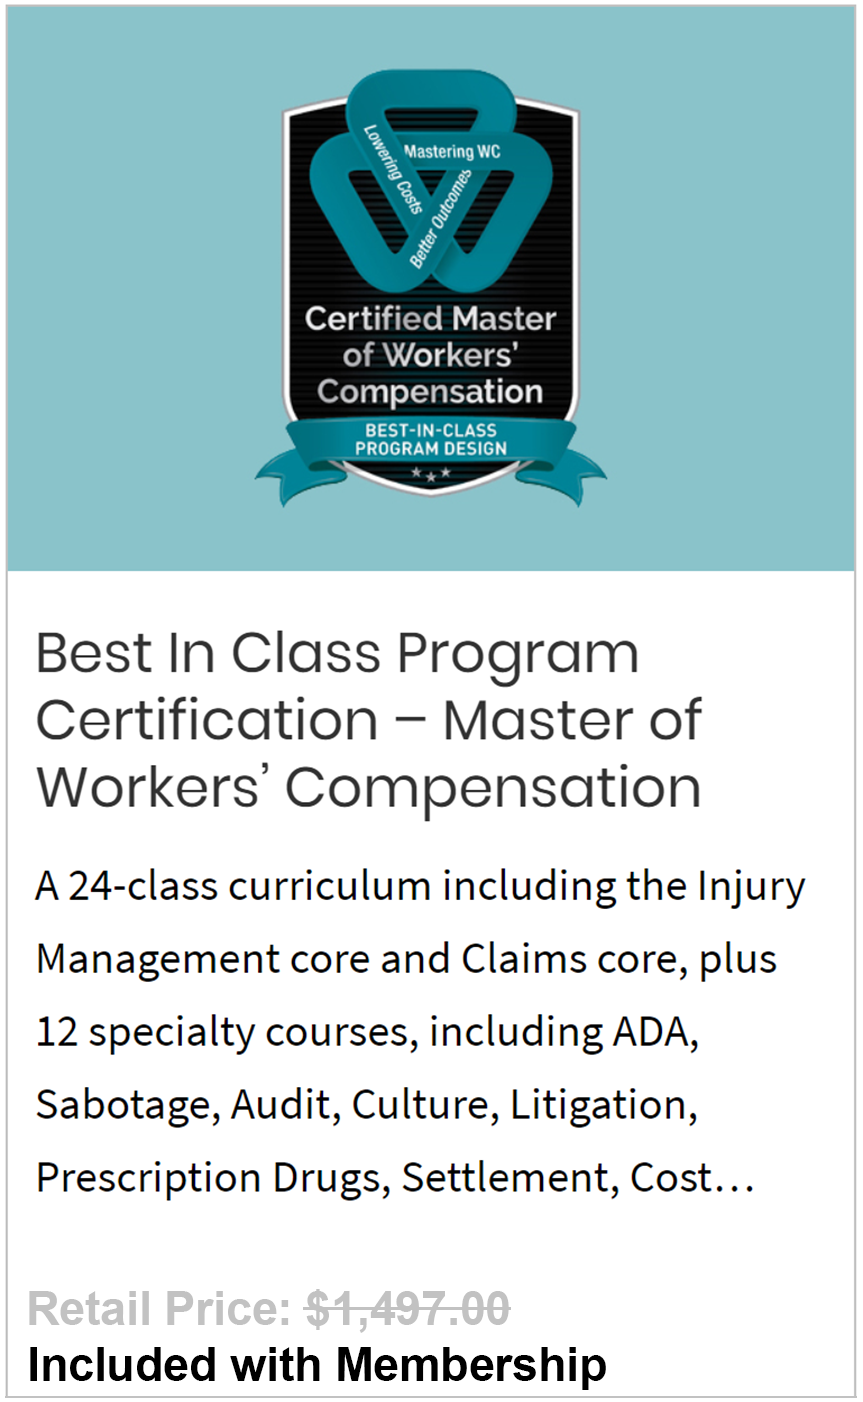 Best In Class Program Certification – Master of Workers' Compensation